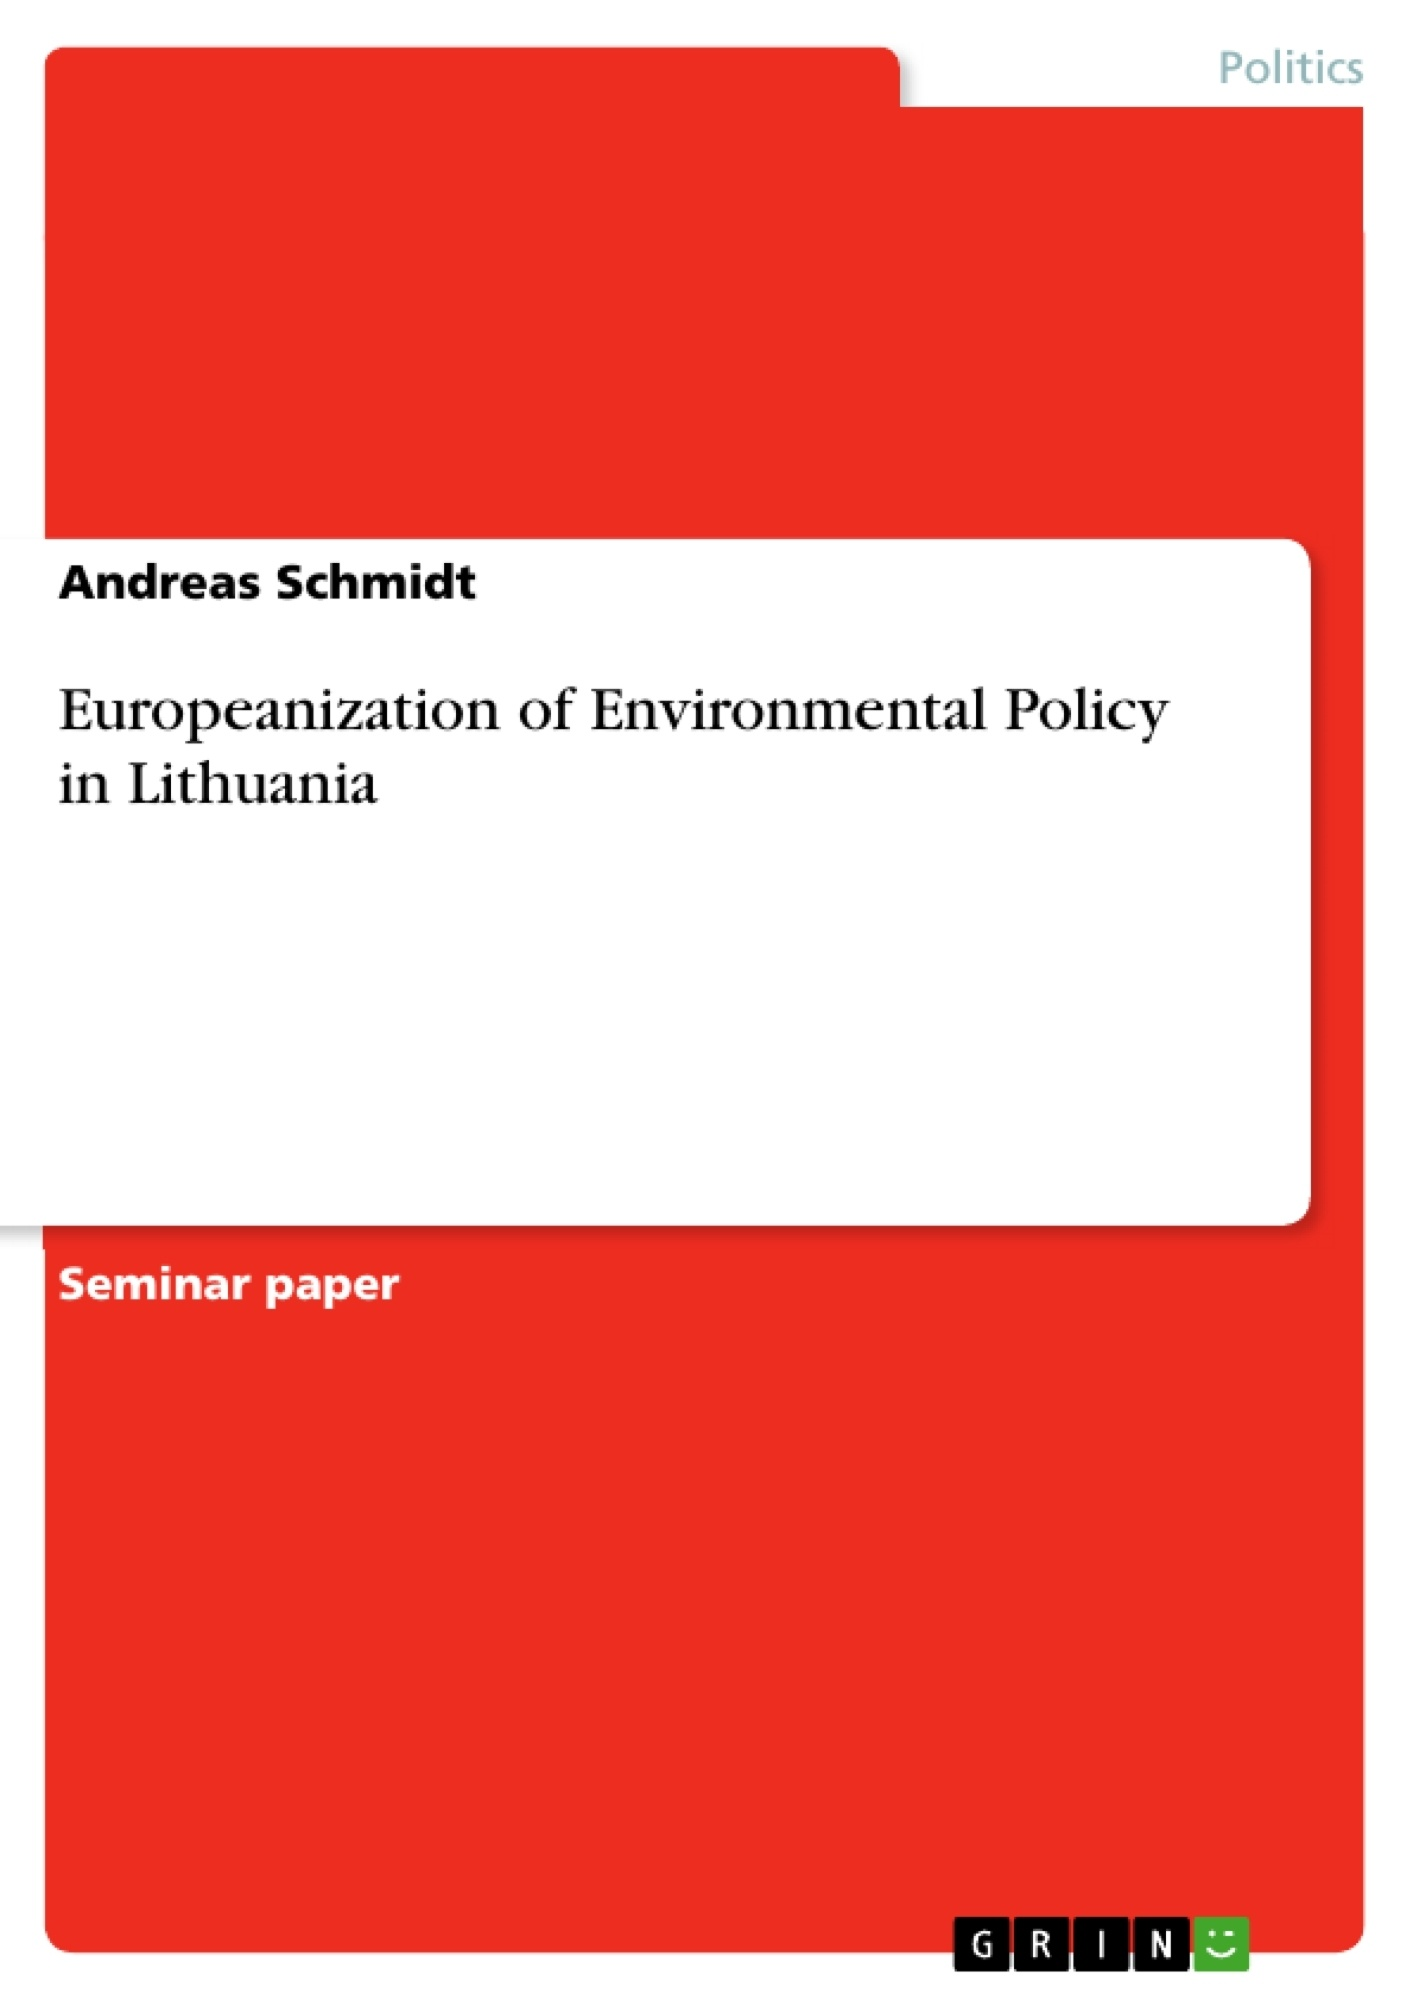 Title: Europeanization of Environmental Policy in Lithuania